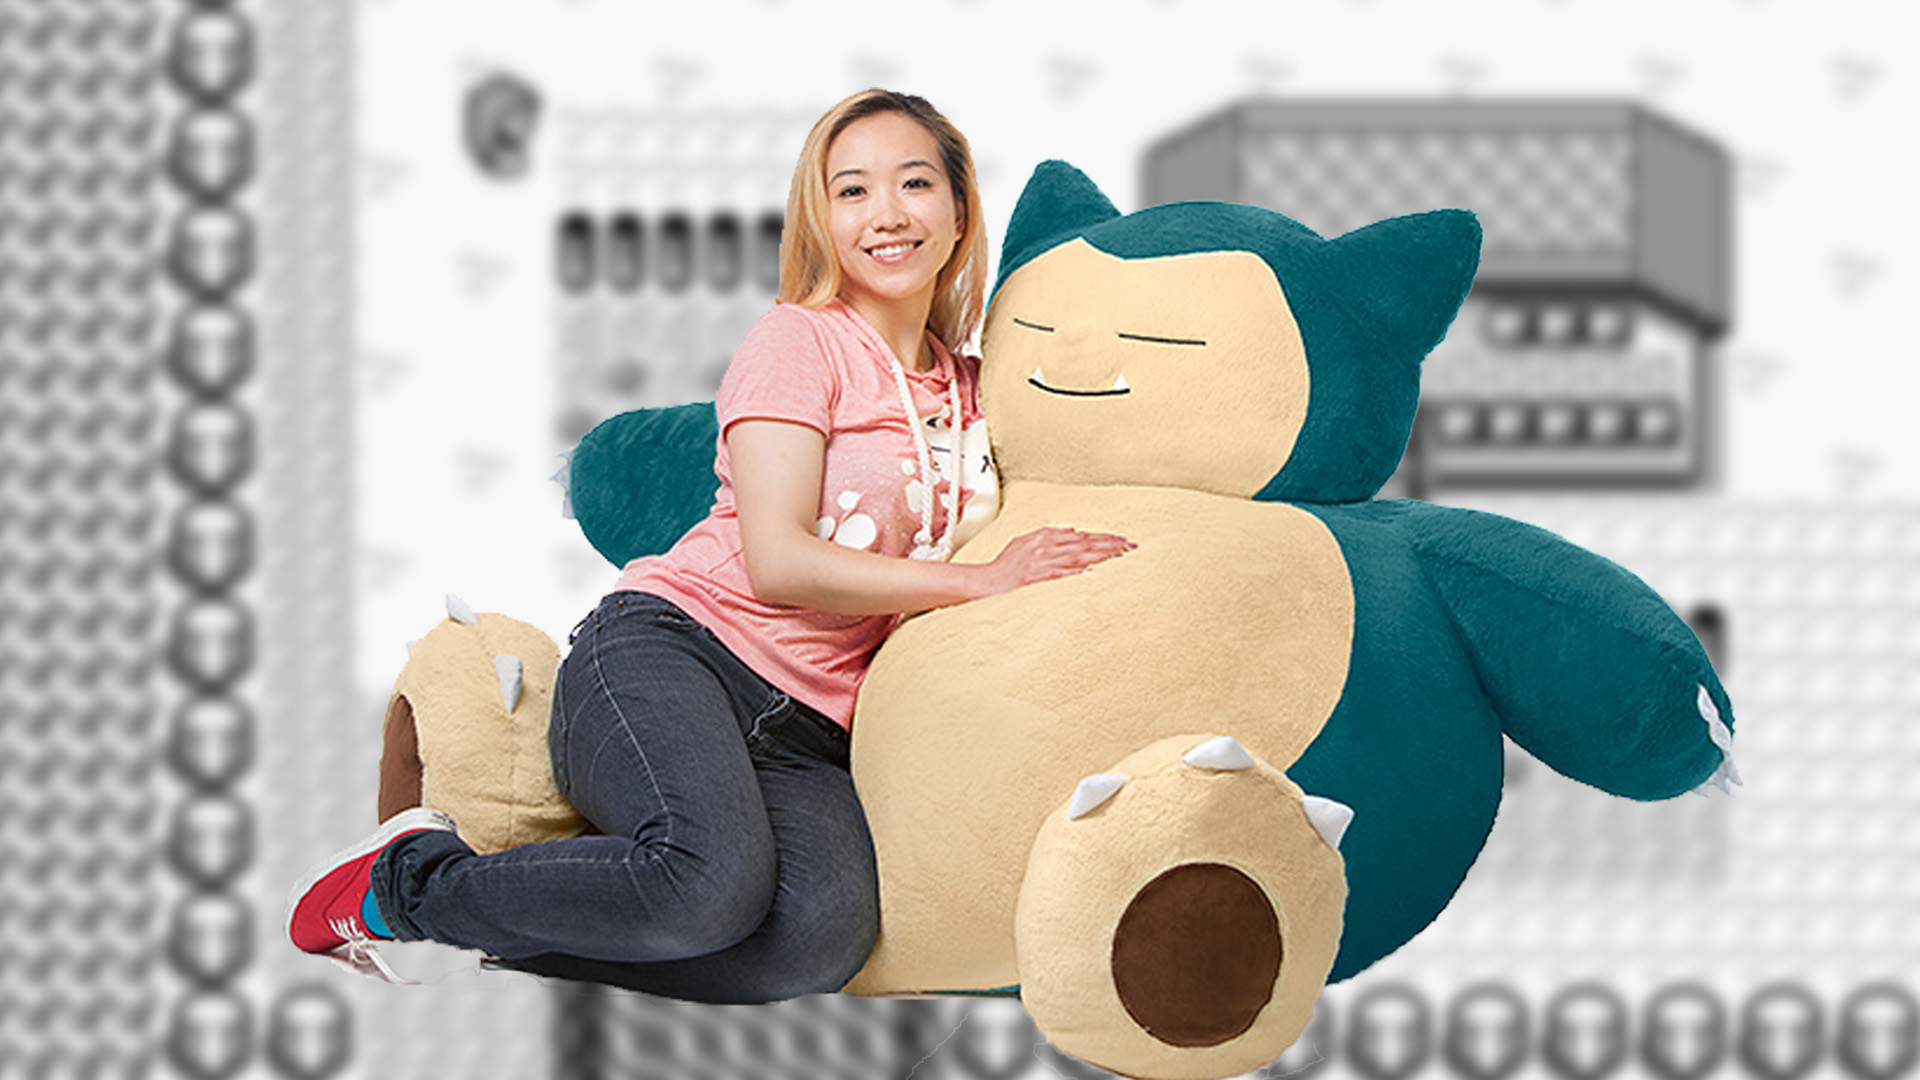 Giant Snorlax Bean Bag Chair Coming Exclusively To Think Geek